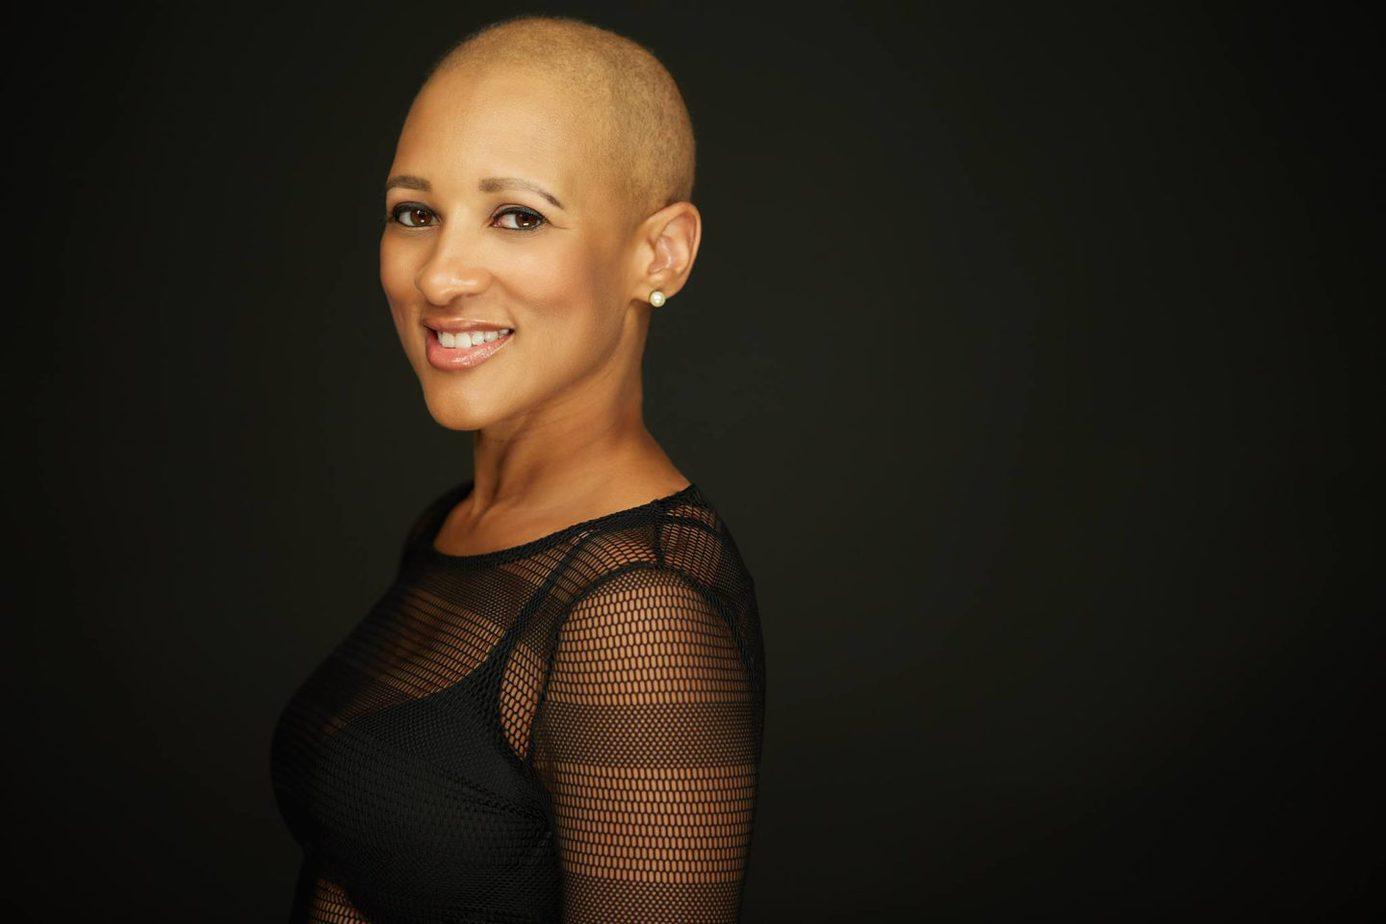 CEO of Natural Hair Care Brand Shares Her Journey With Breast Cancer